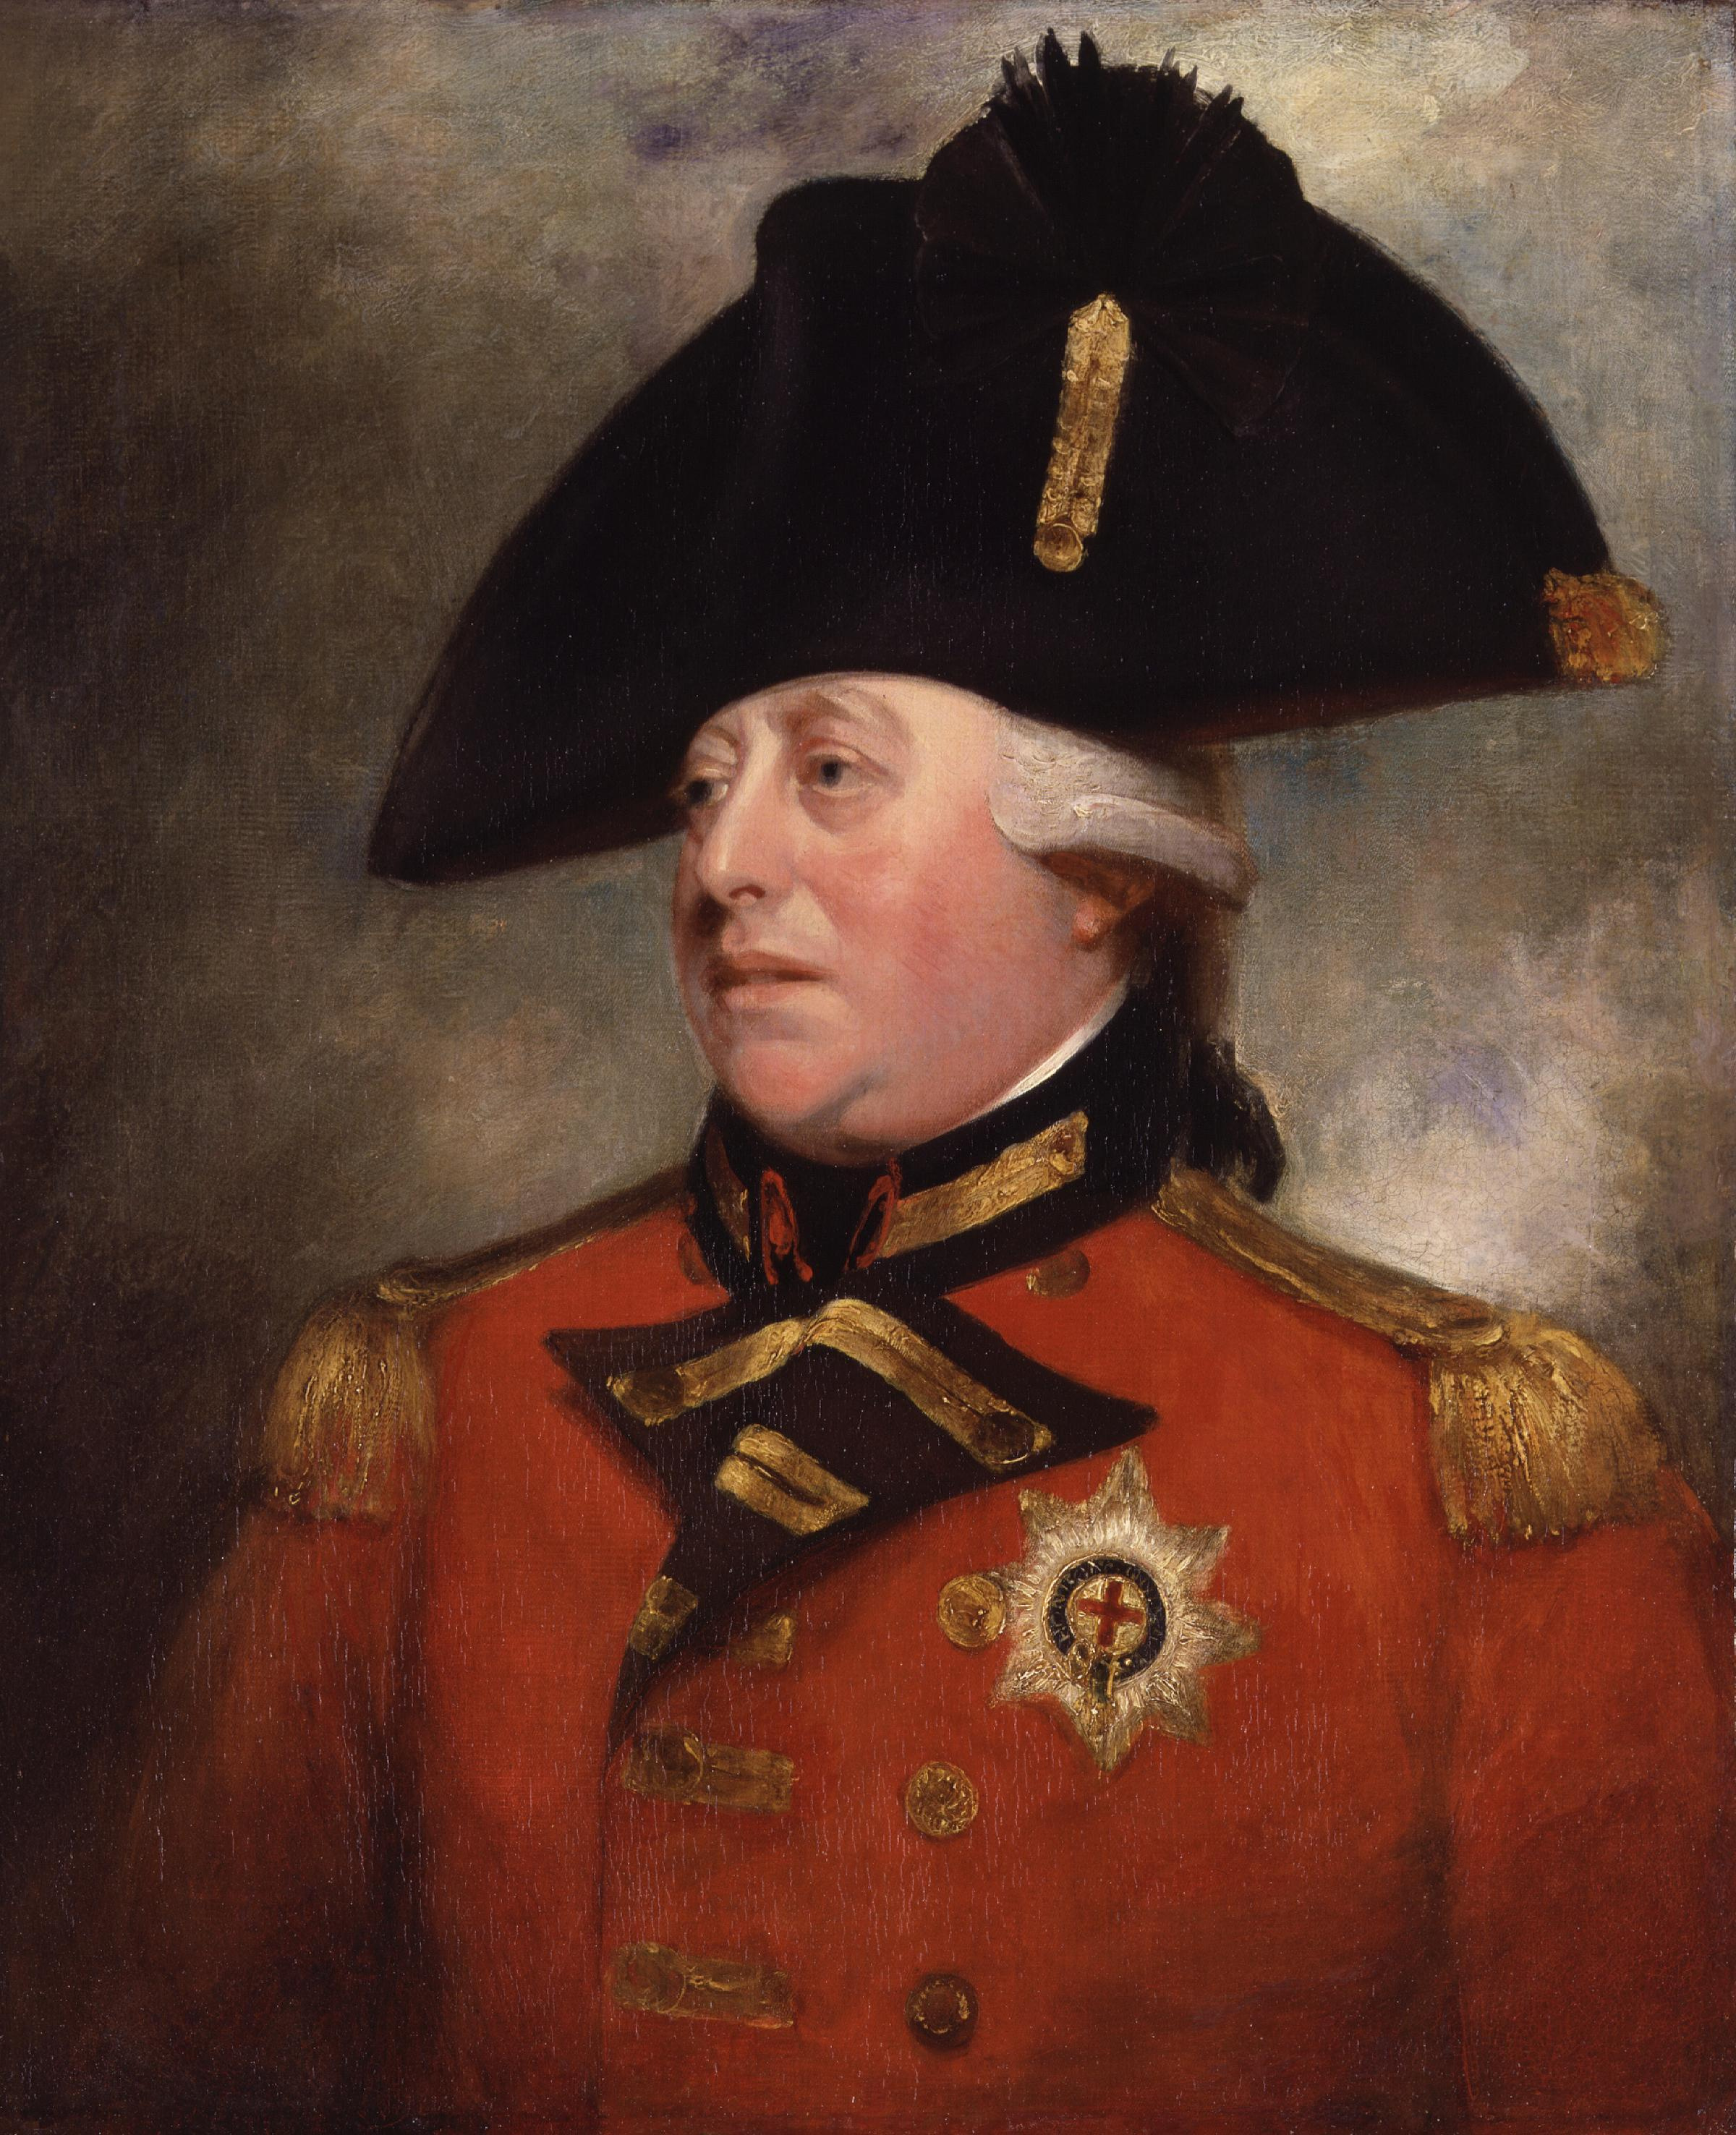 King George III by Sir William Beechey